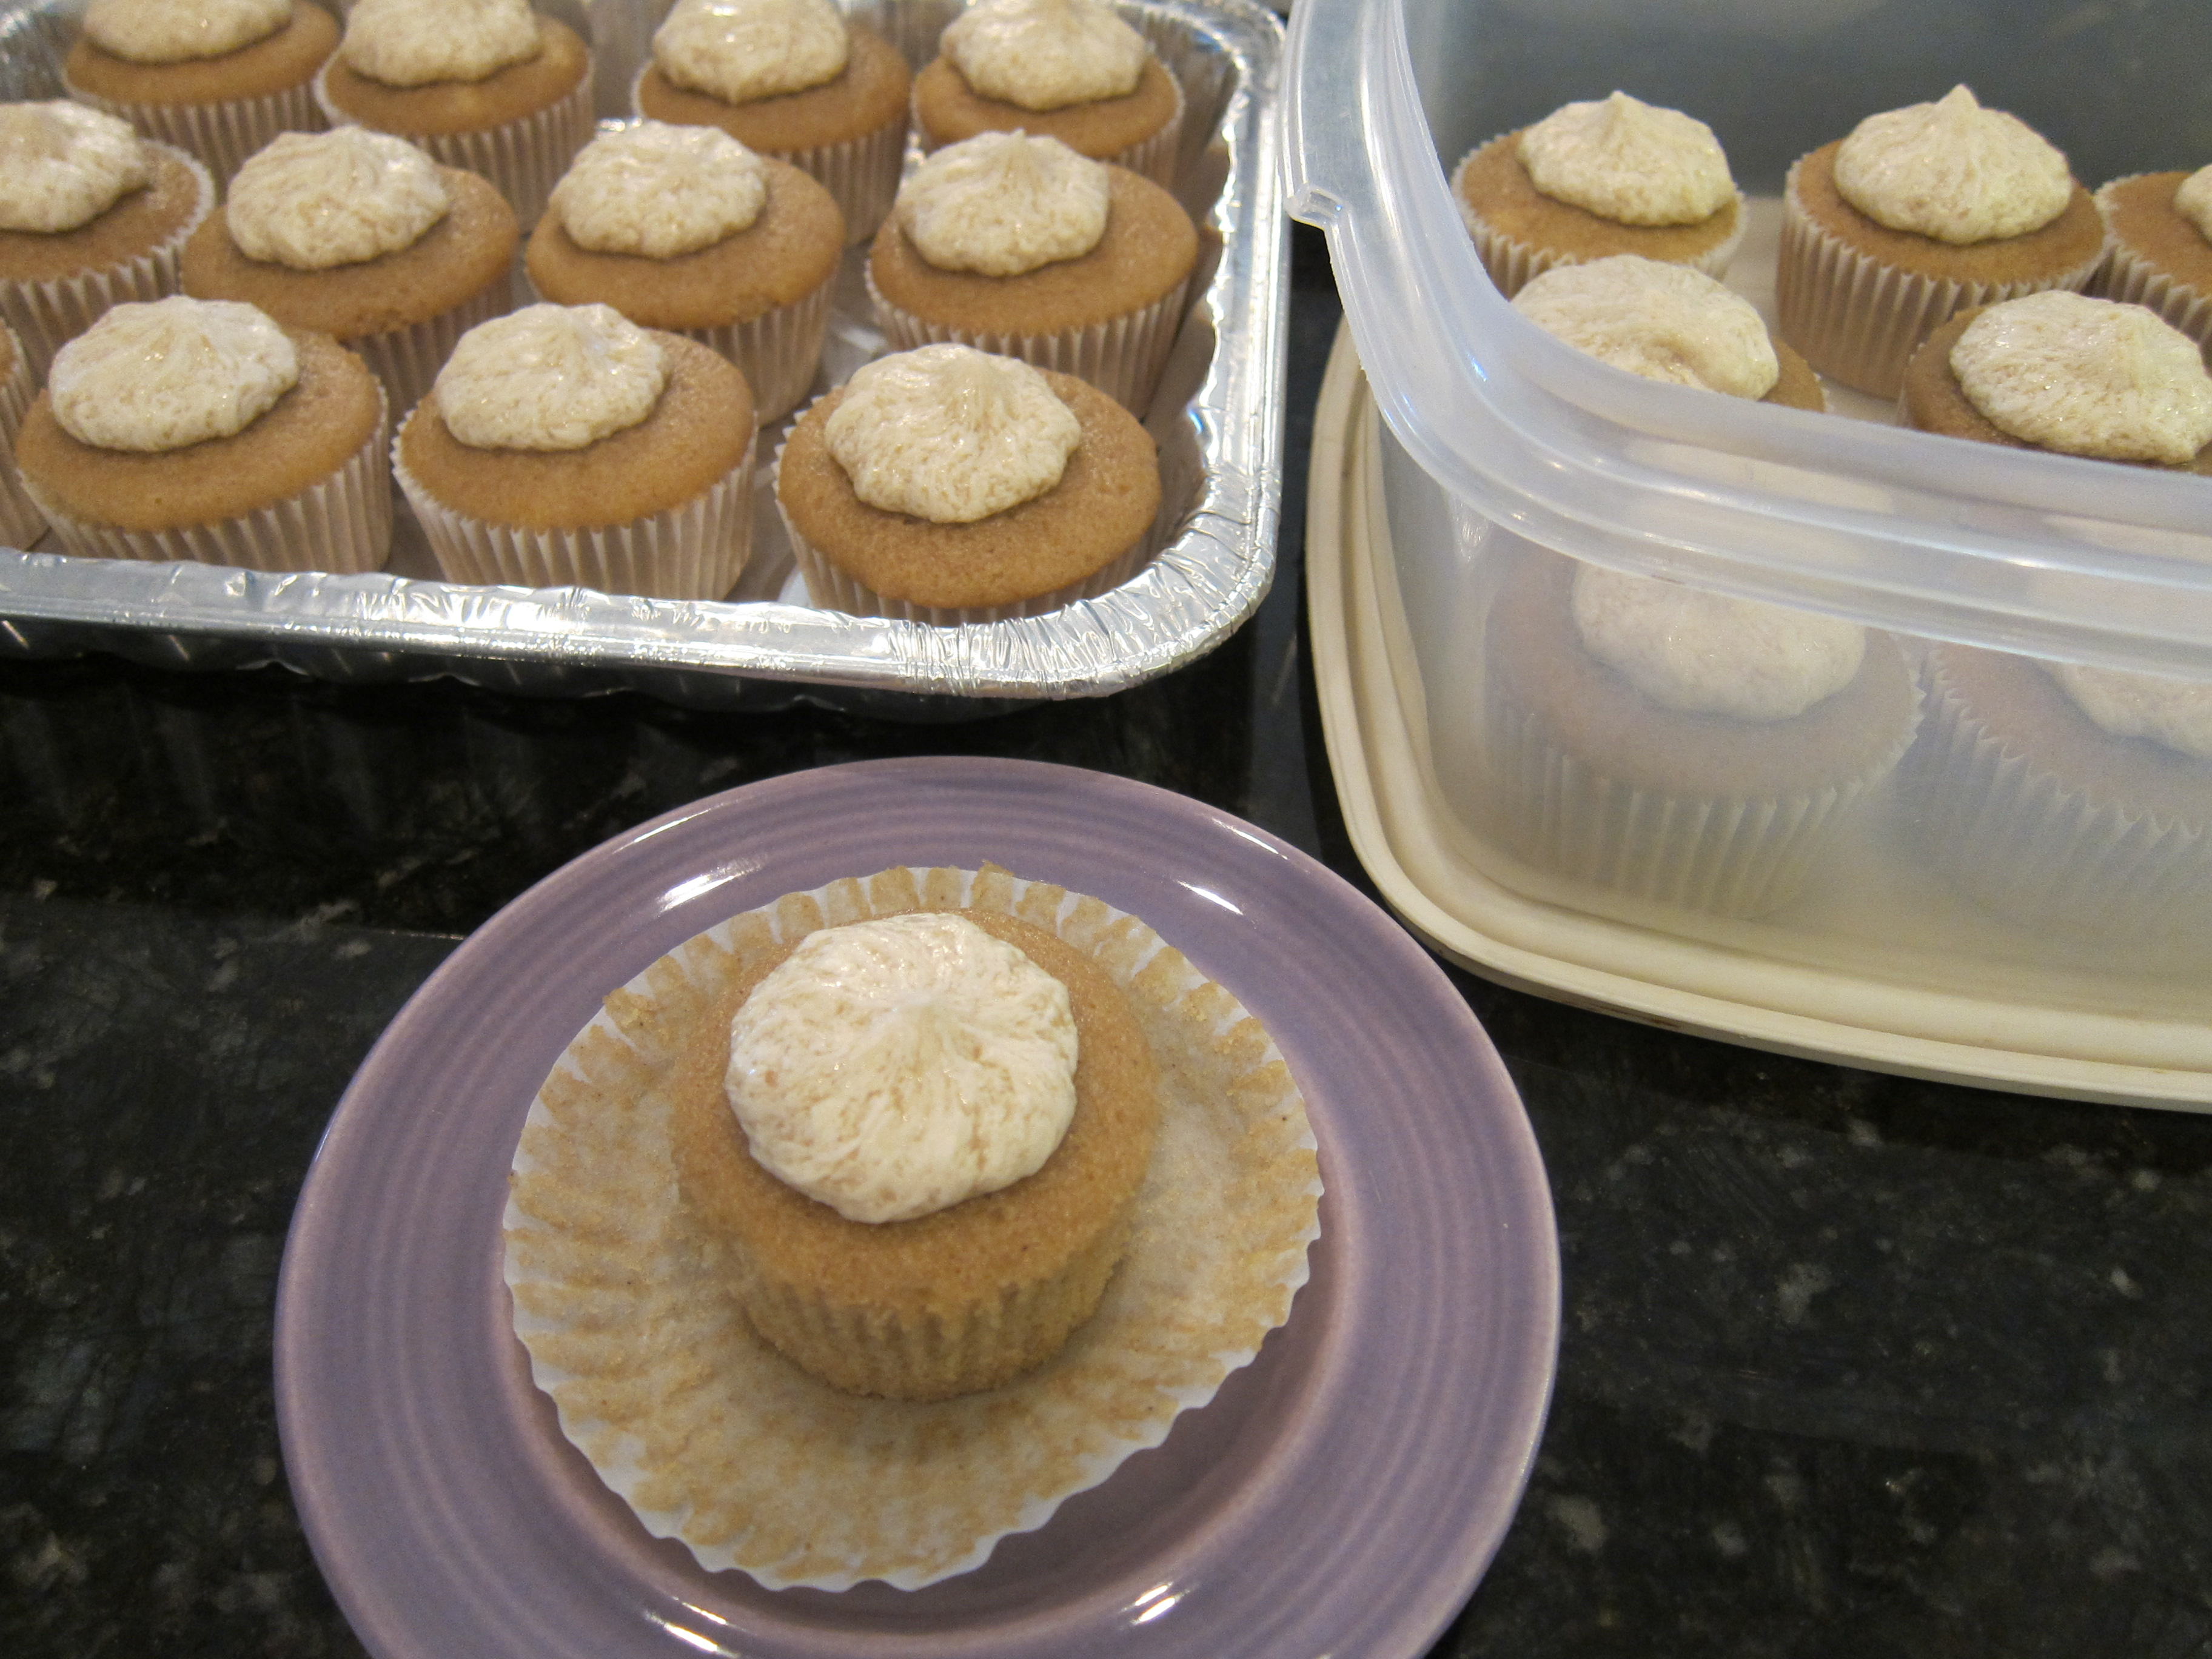 Cupcakes made with hickory nut broth